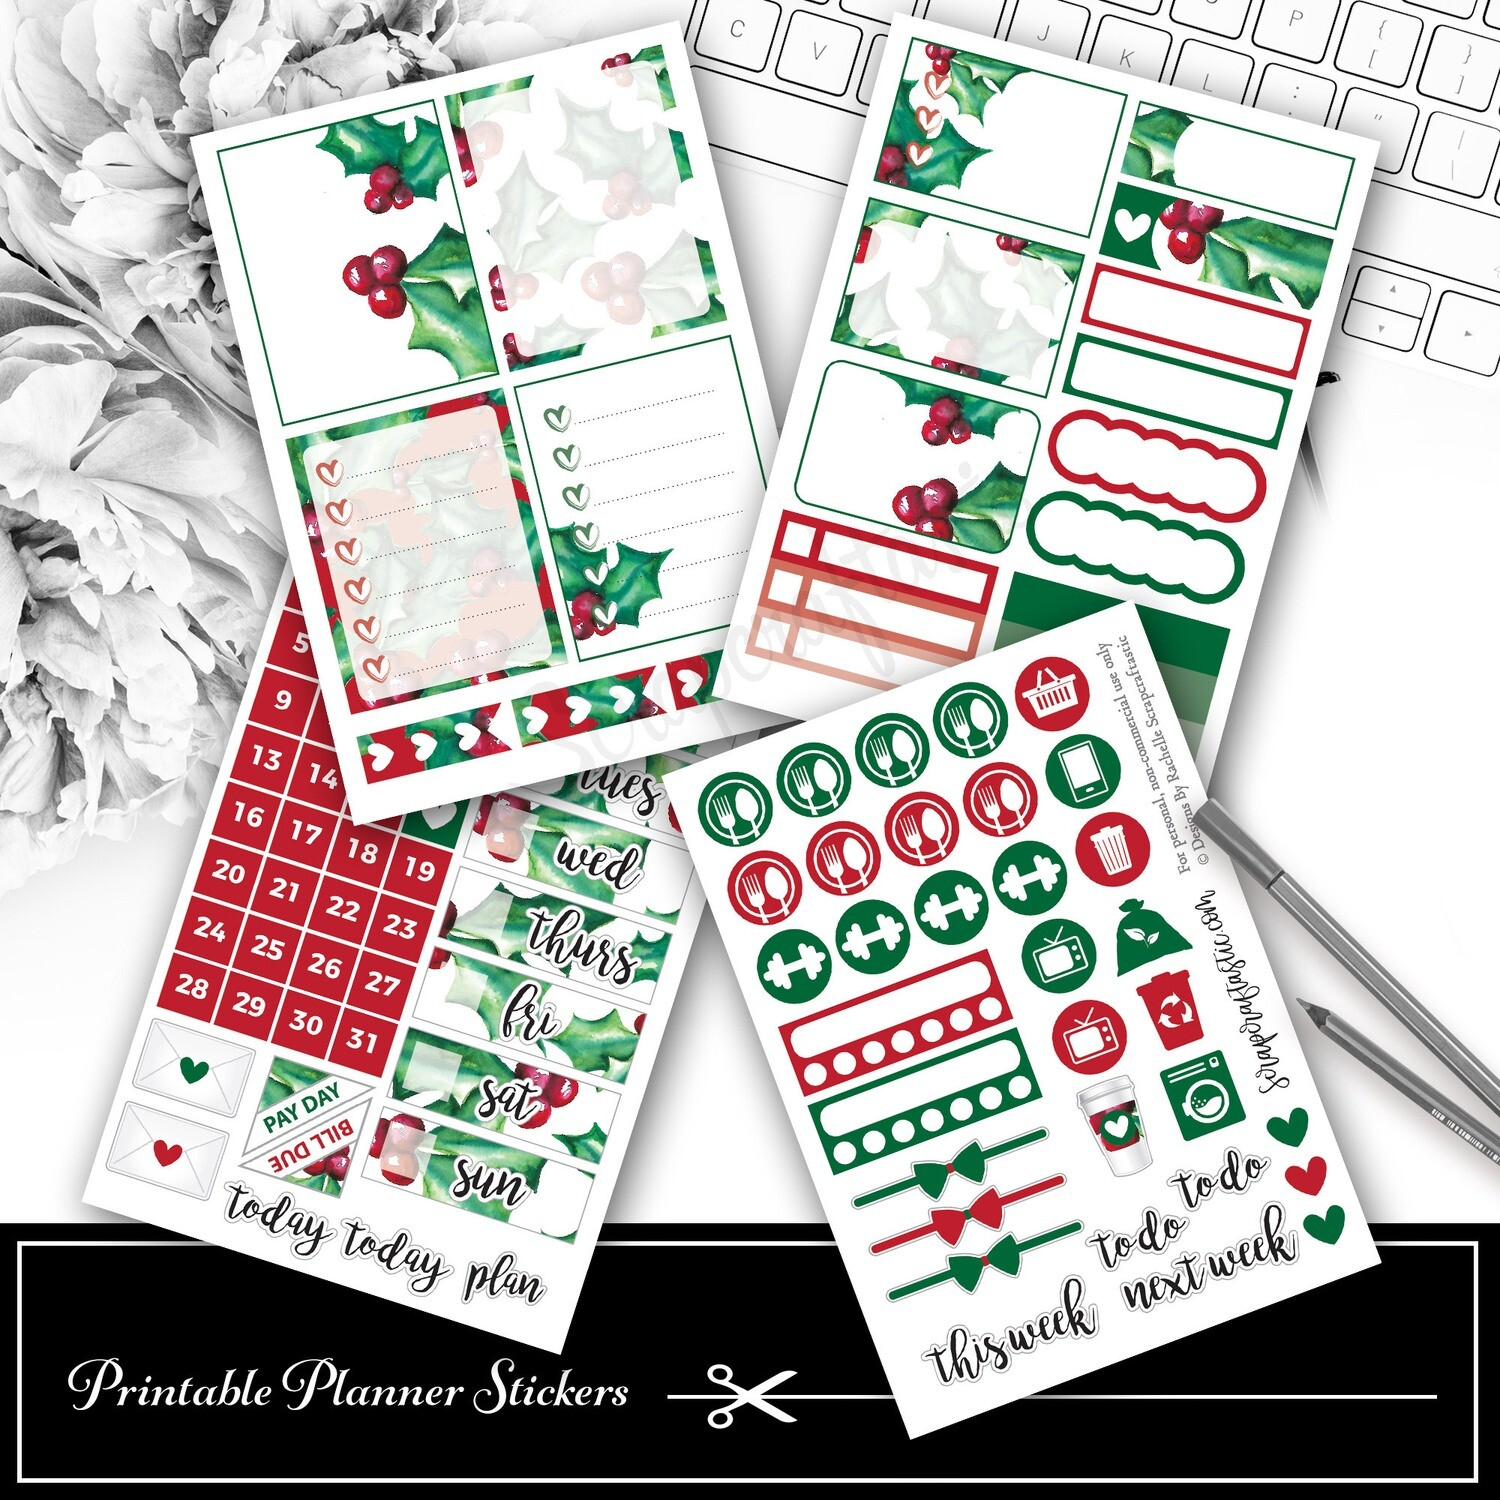 Christmas Holly and Berries Mini Kit Printable Planner Stickers